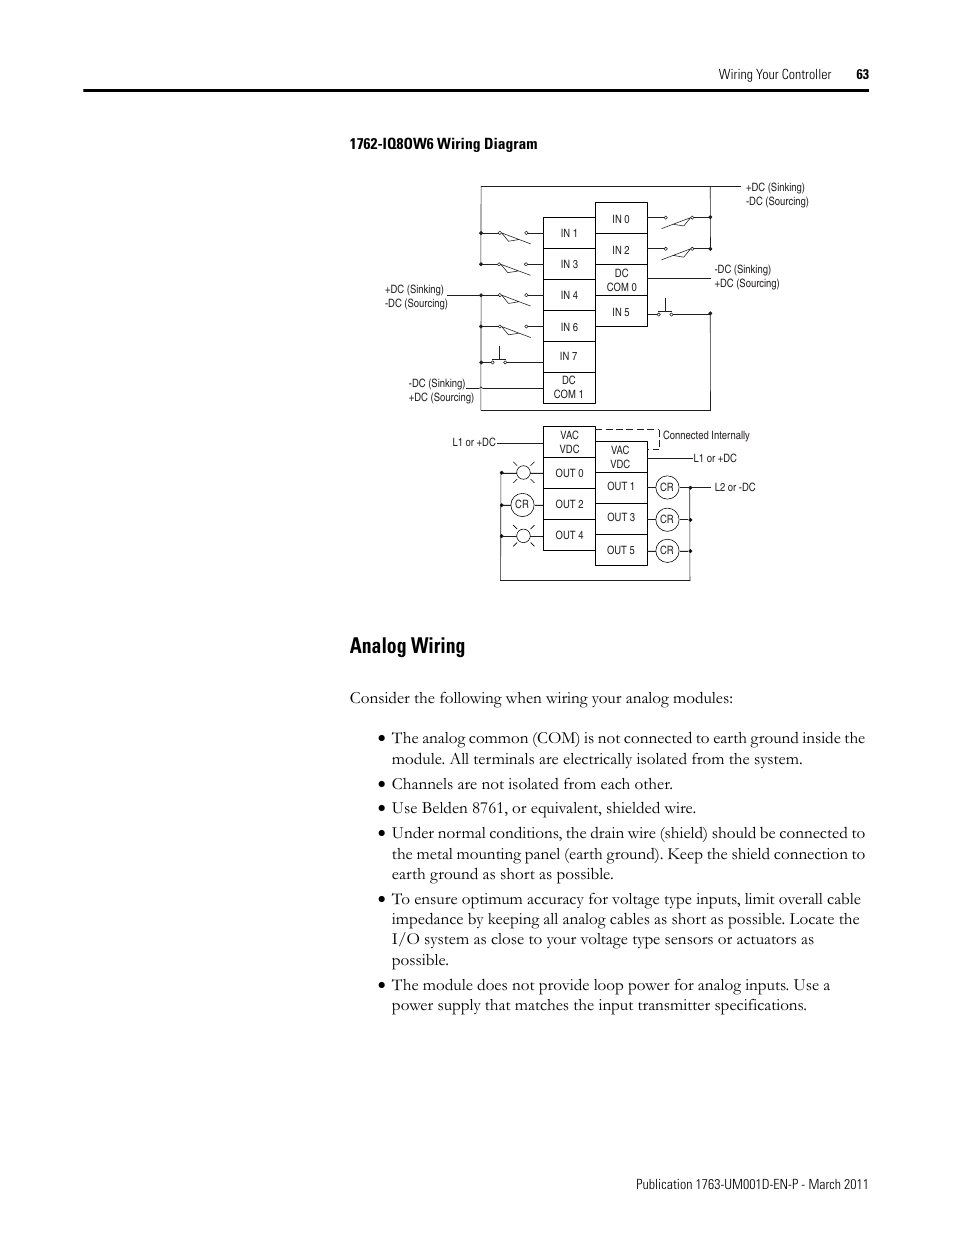 Aaon rm series service manual Aaon Wiring Diagrams on